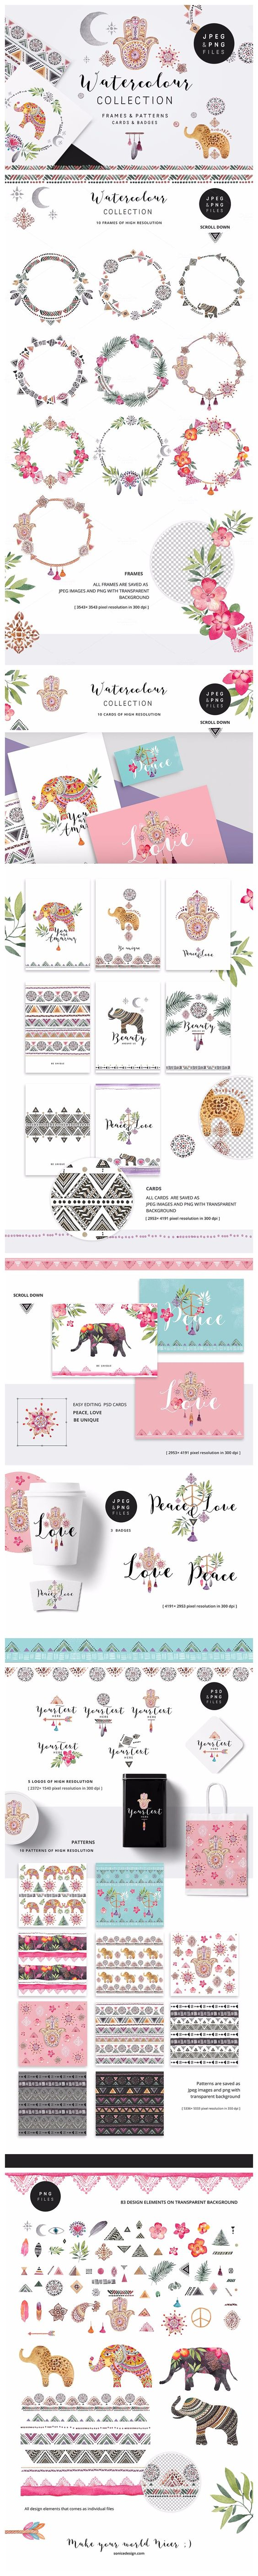 Peace&Love (watercolour collection) | #watercolor #clipart #wedding #flower #floral #wreath #feather #ethnic #nature #plant #patterns #badges #greetingcard #notebook #invitation #indian #hamsahand #elephant #symbol #logo